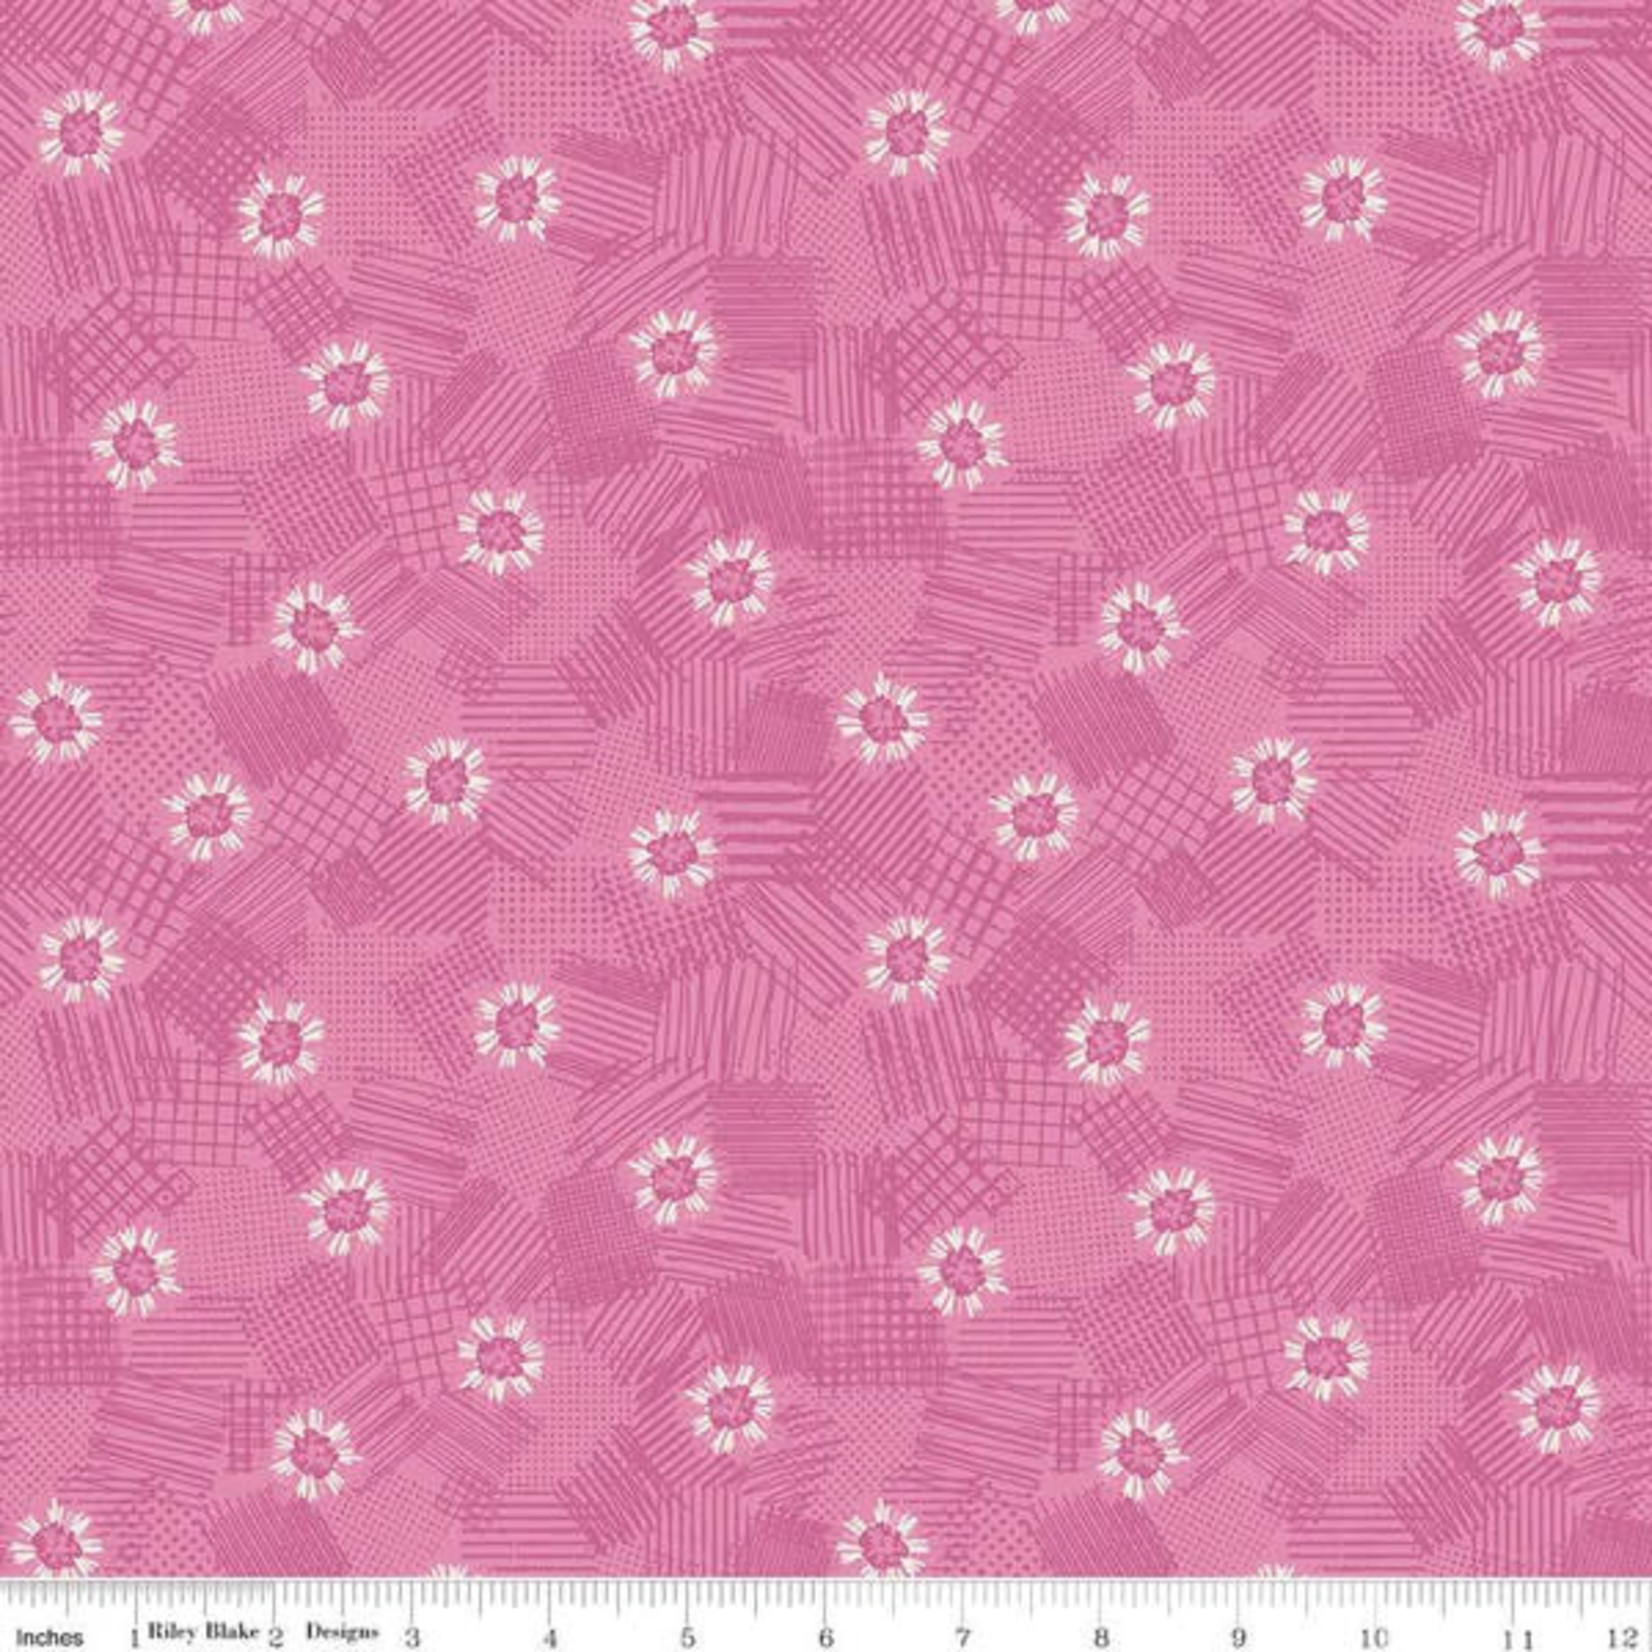 RILEY BLAKE DESIGNS MEADOW LANE, SCRIBBLED FLORAL, PINK C10123 PER CM OR $20/M